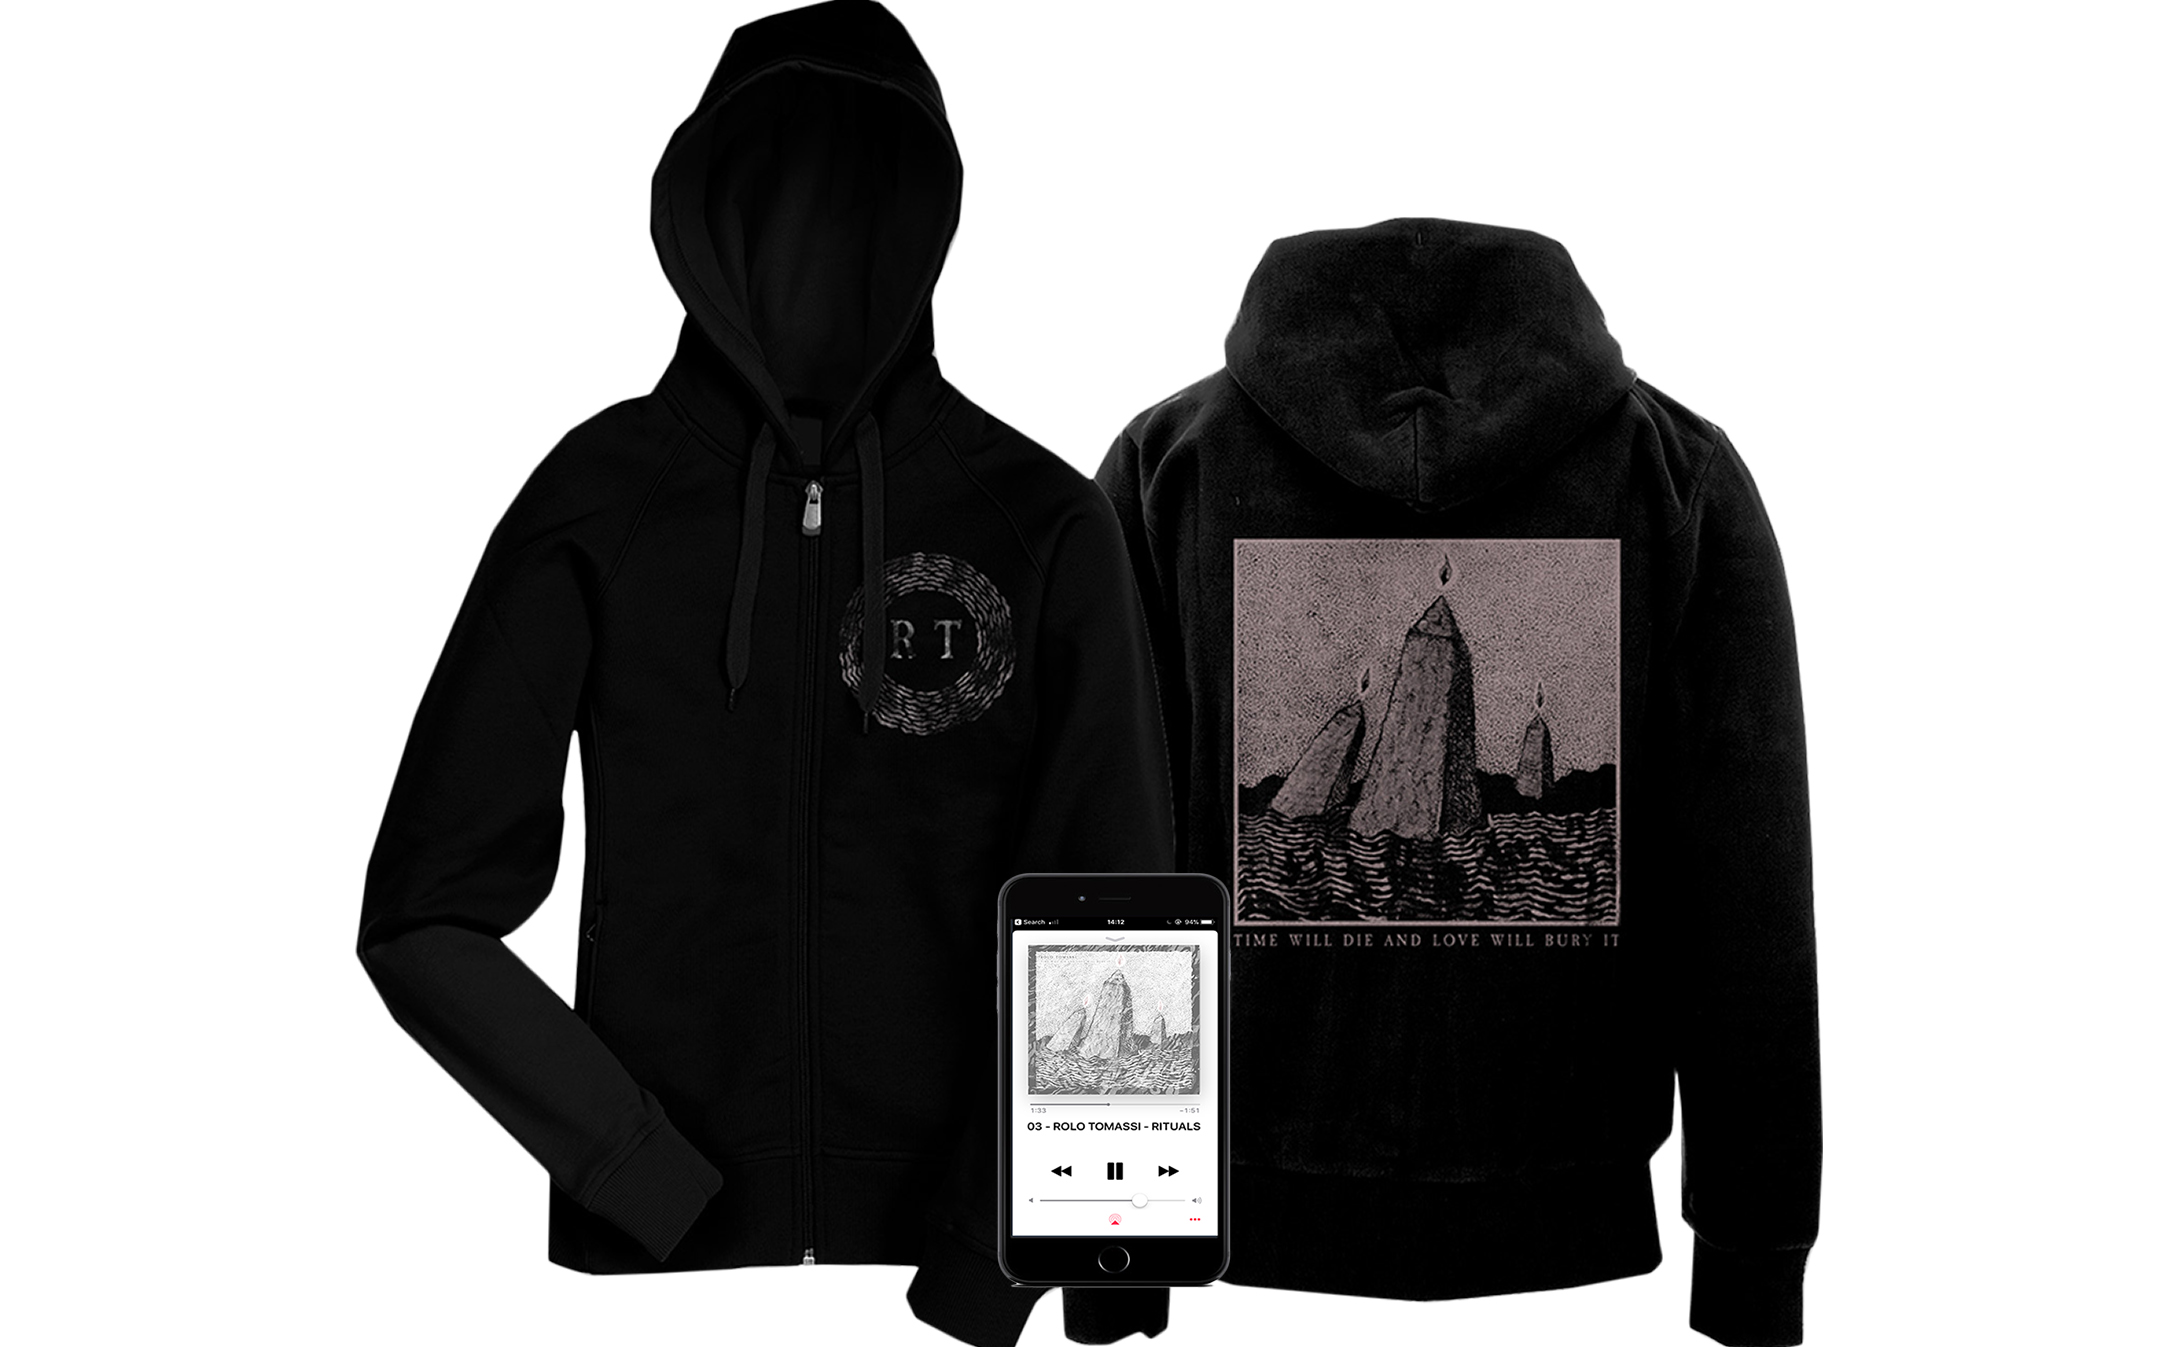 Rolo Tomassi - '...Love Will Bury It' DD + hoodie PREORDER